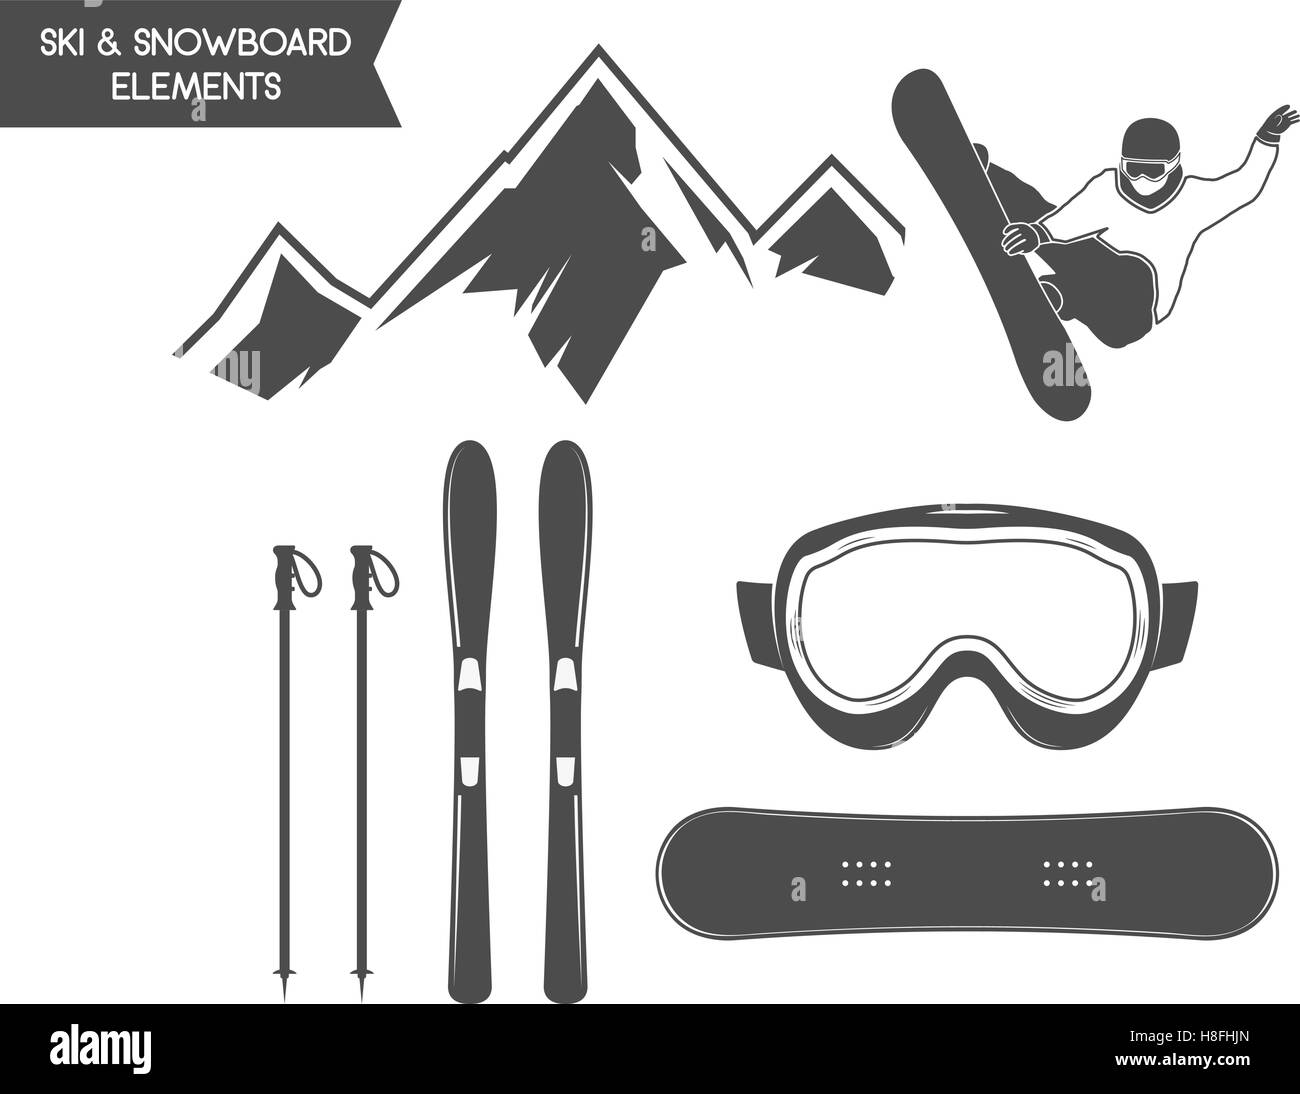 1c48d71e58ec Winter sports elements. Snowboard